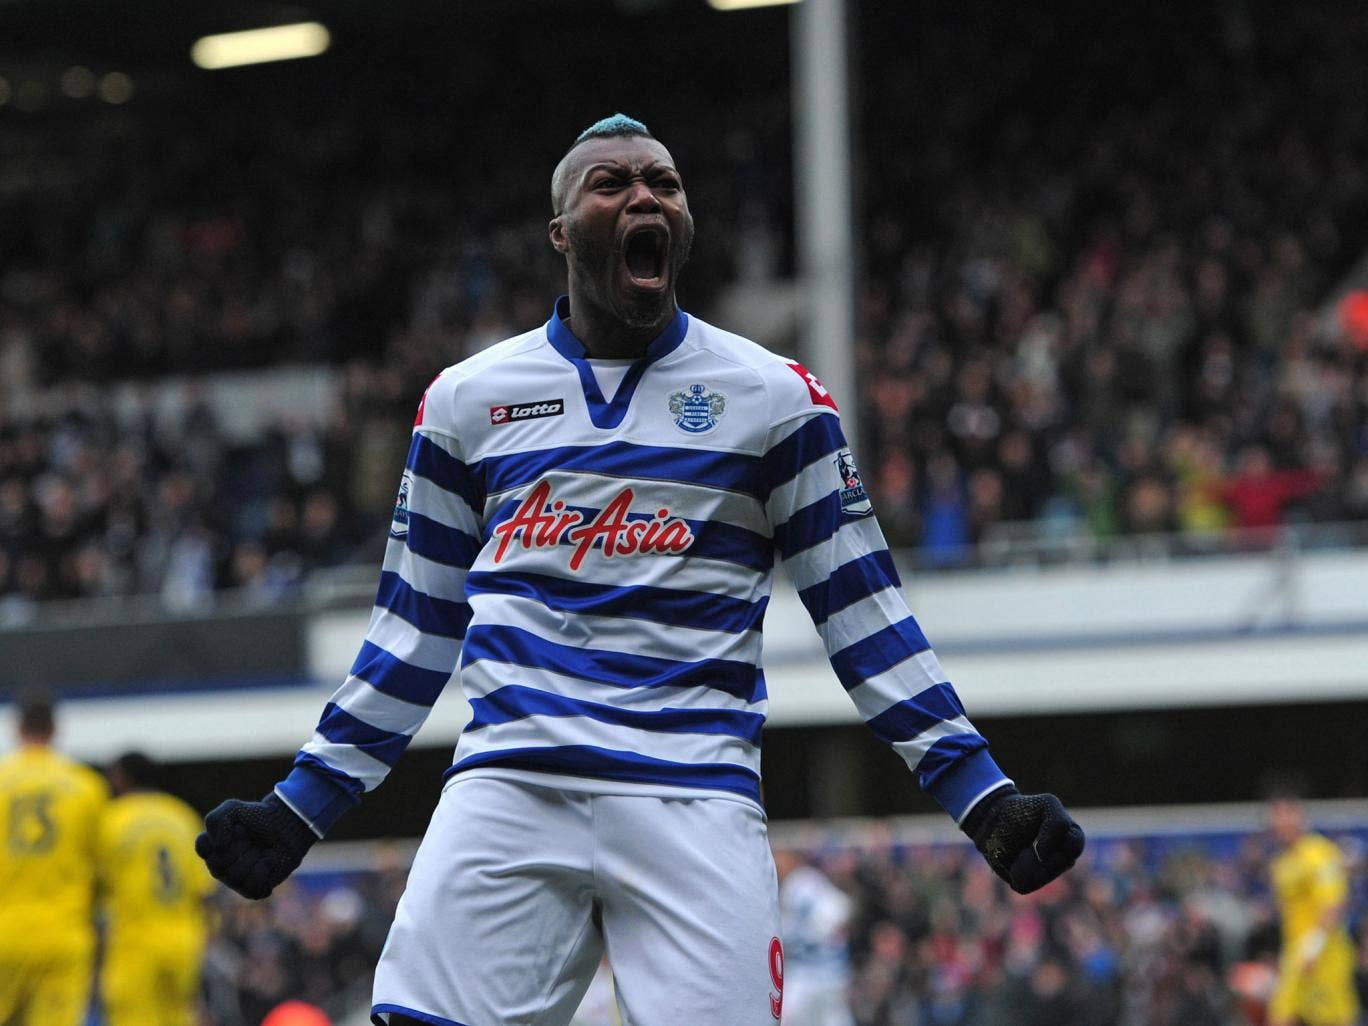 <b>Djibril Cissé (Lazio to QPR, £4m, 2012)</b><br/> Cissé made a highly eventful start to his QPR career after arriving on deadline day in 2012. The Frenchman scored on his debut as his side earned a crucial draw against fellow strugglers Aston Villa but